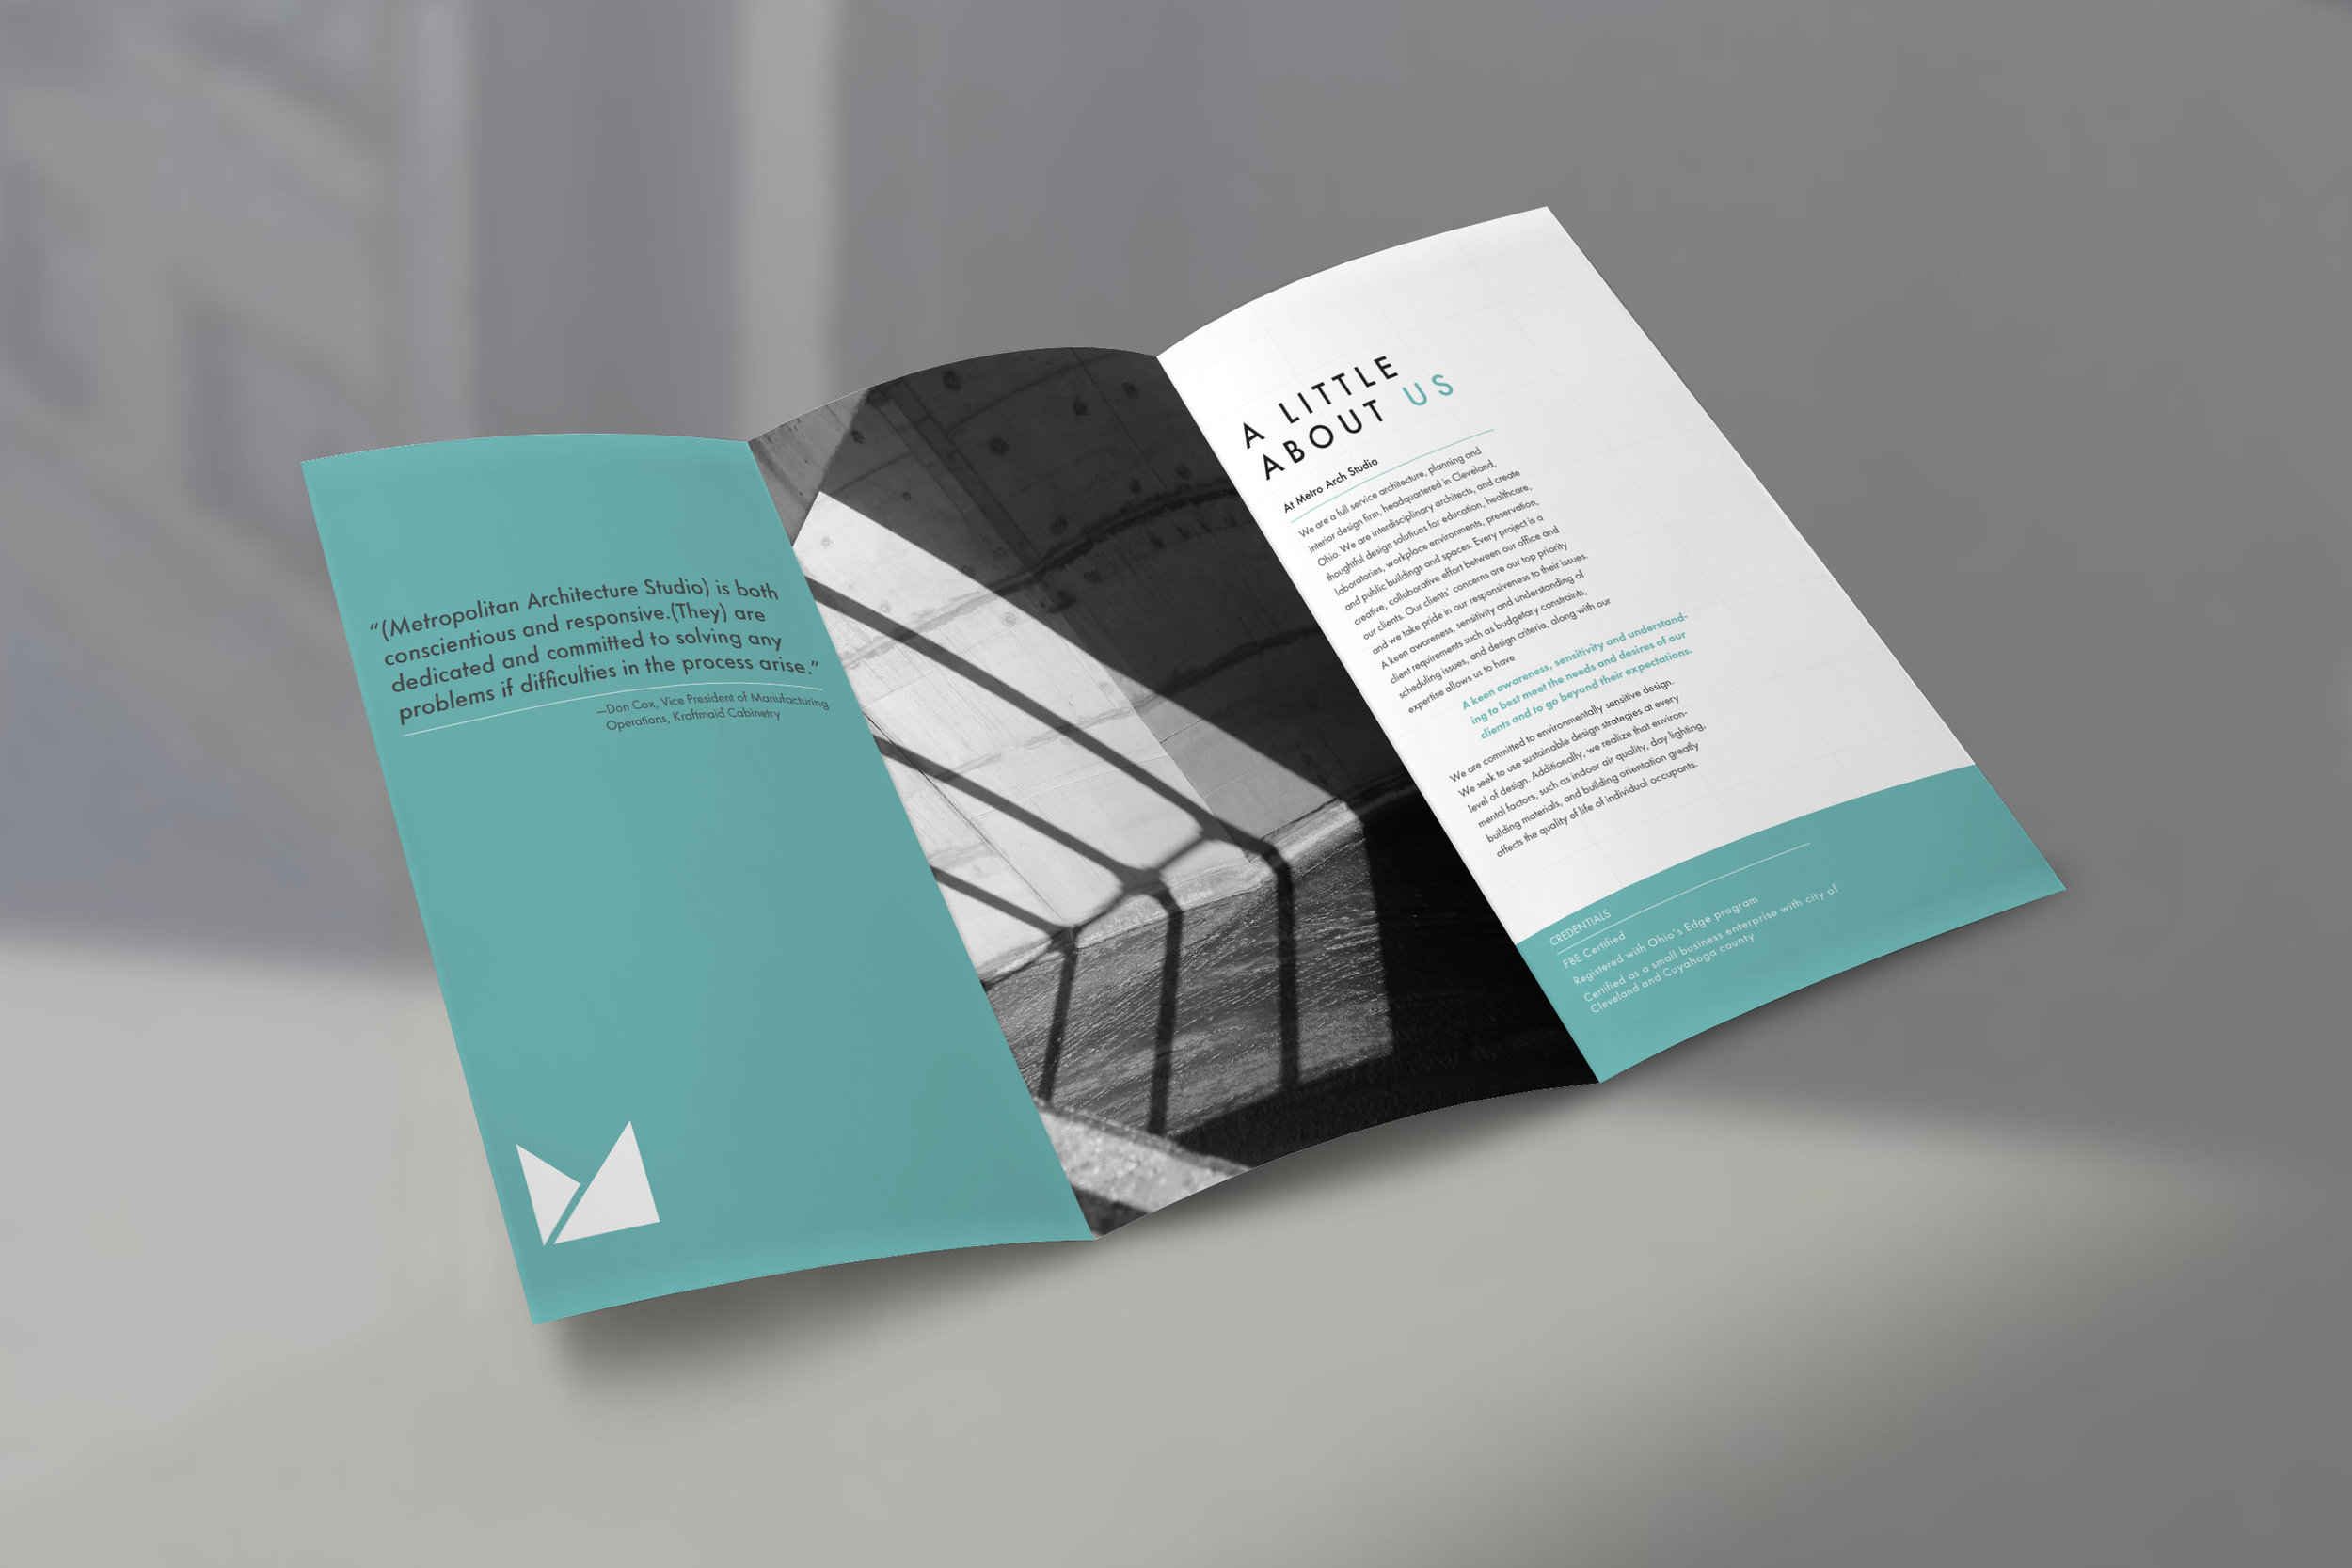 Trifold Brochure Mock-Up1.jpg